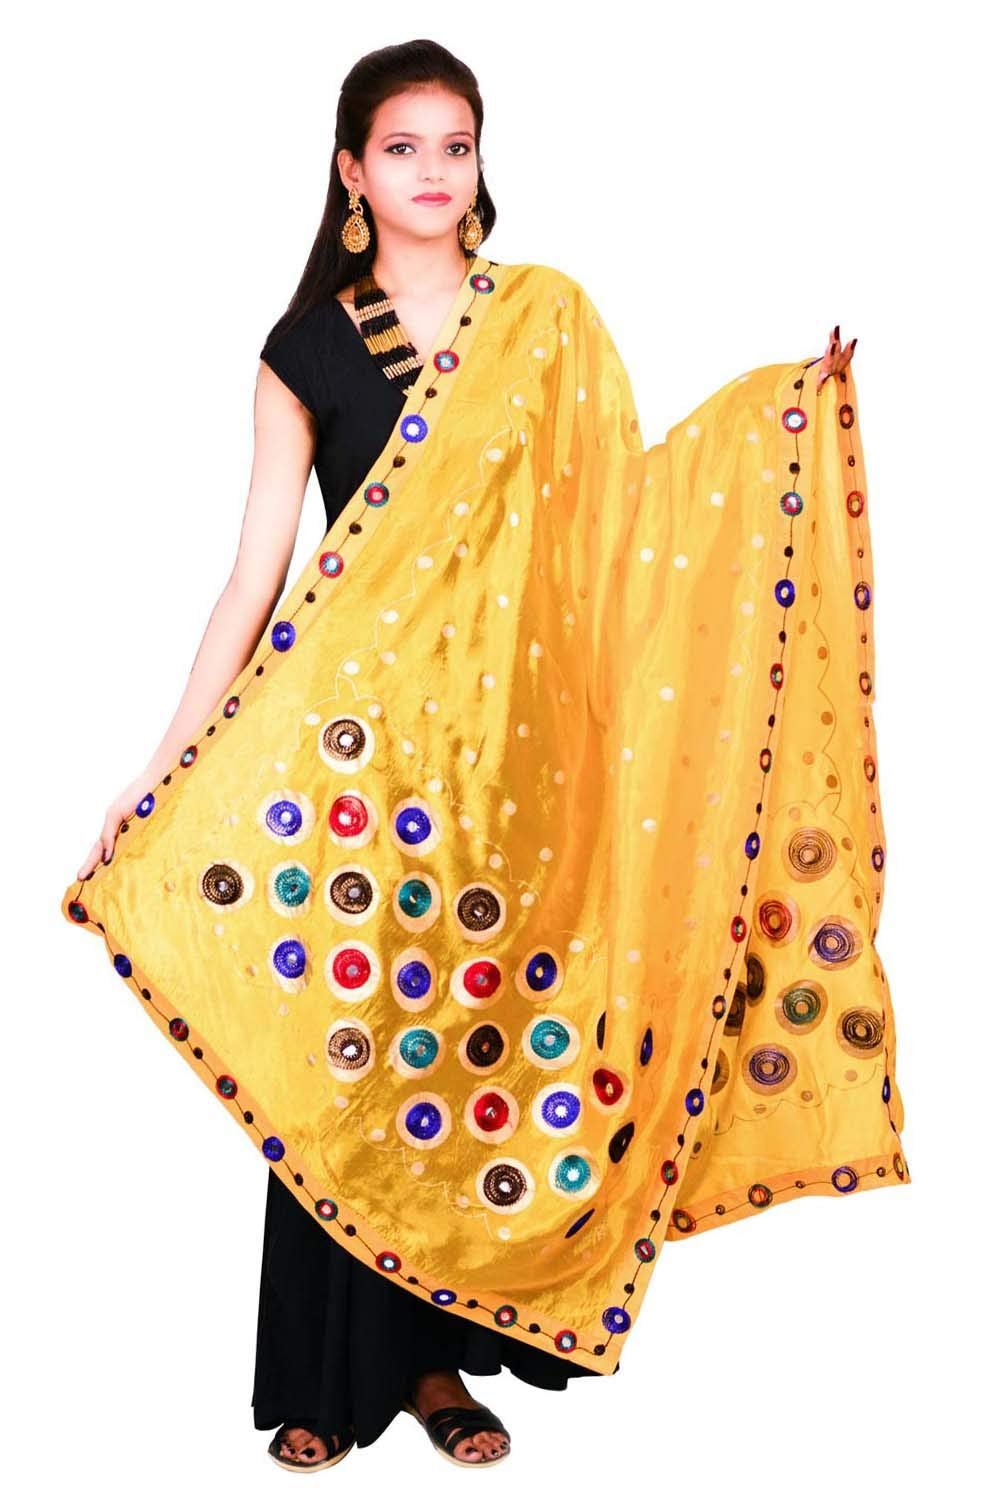 Thread Work Silk Dupatta Traditional Yellow Stole Chunni Scarf Hijab Neck Wrap For Women's